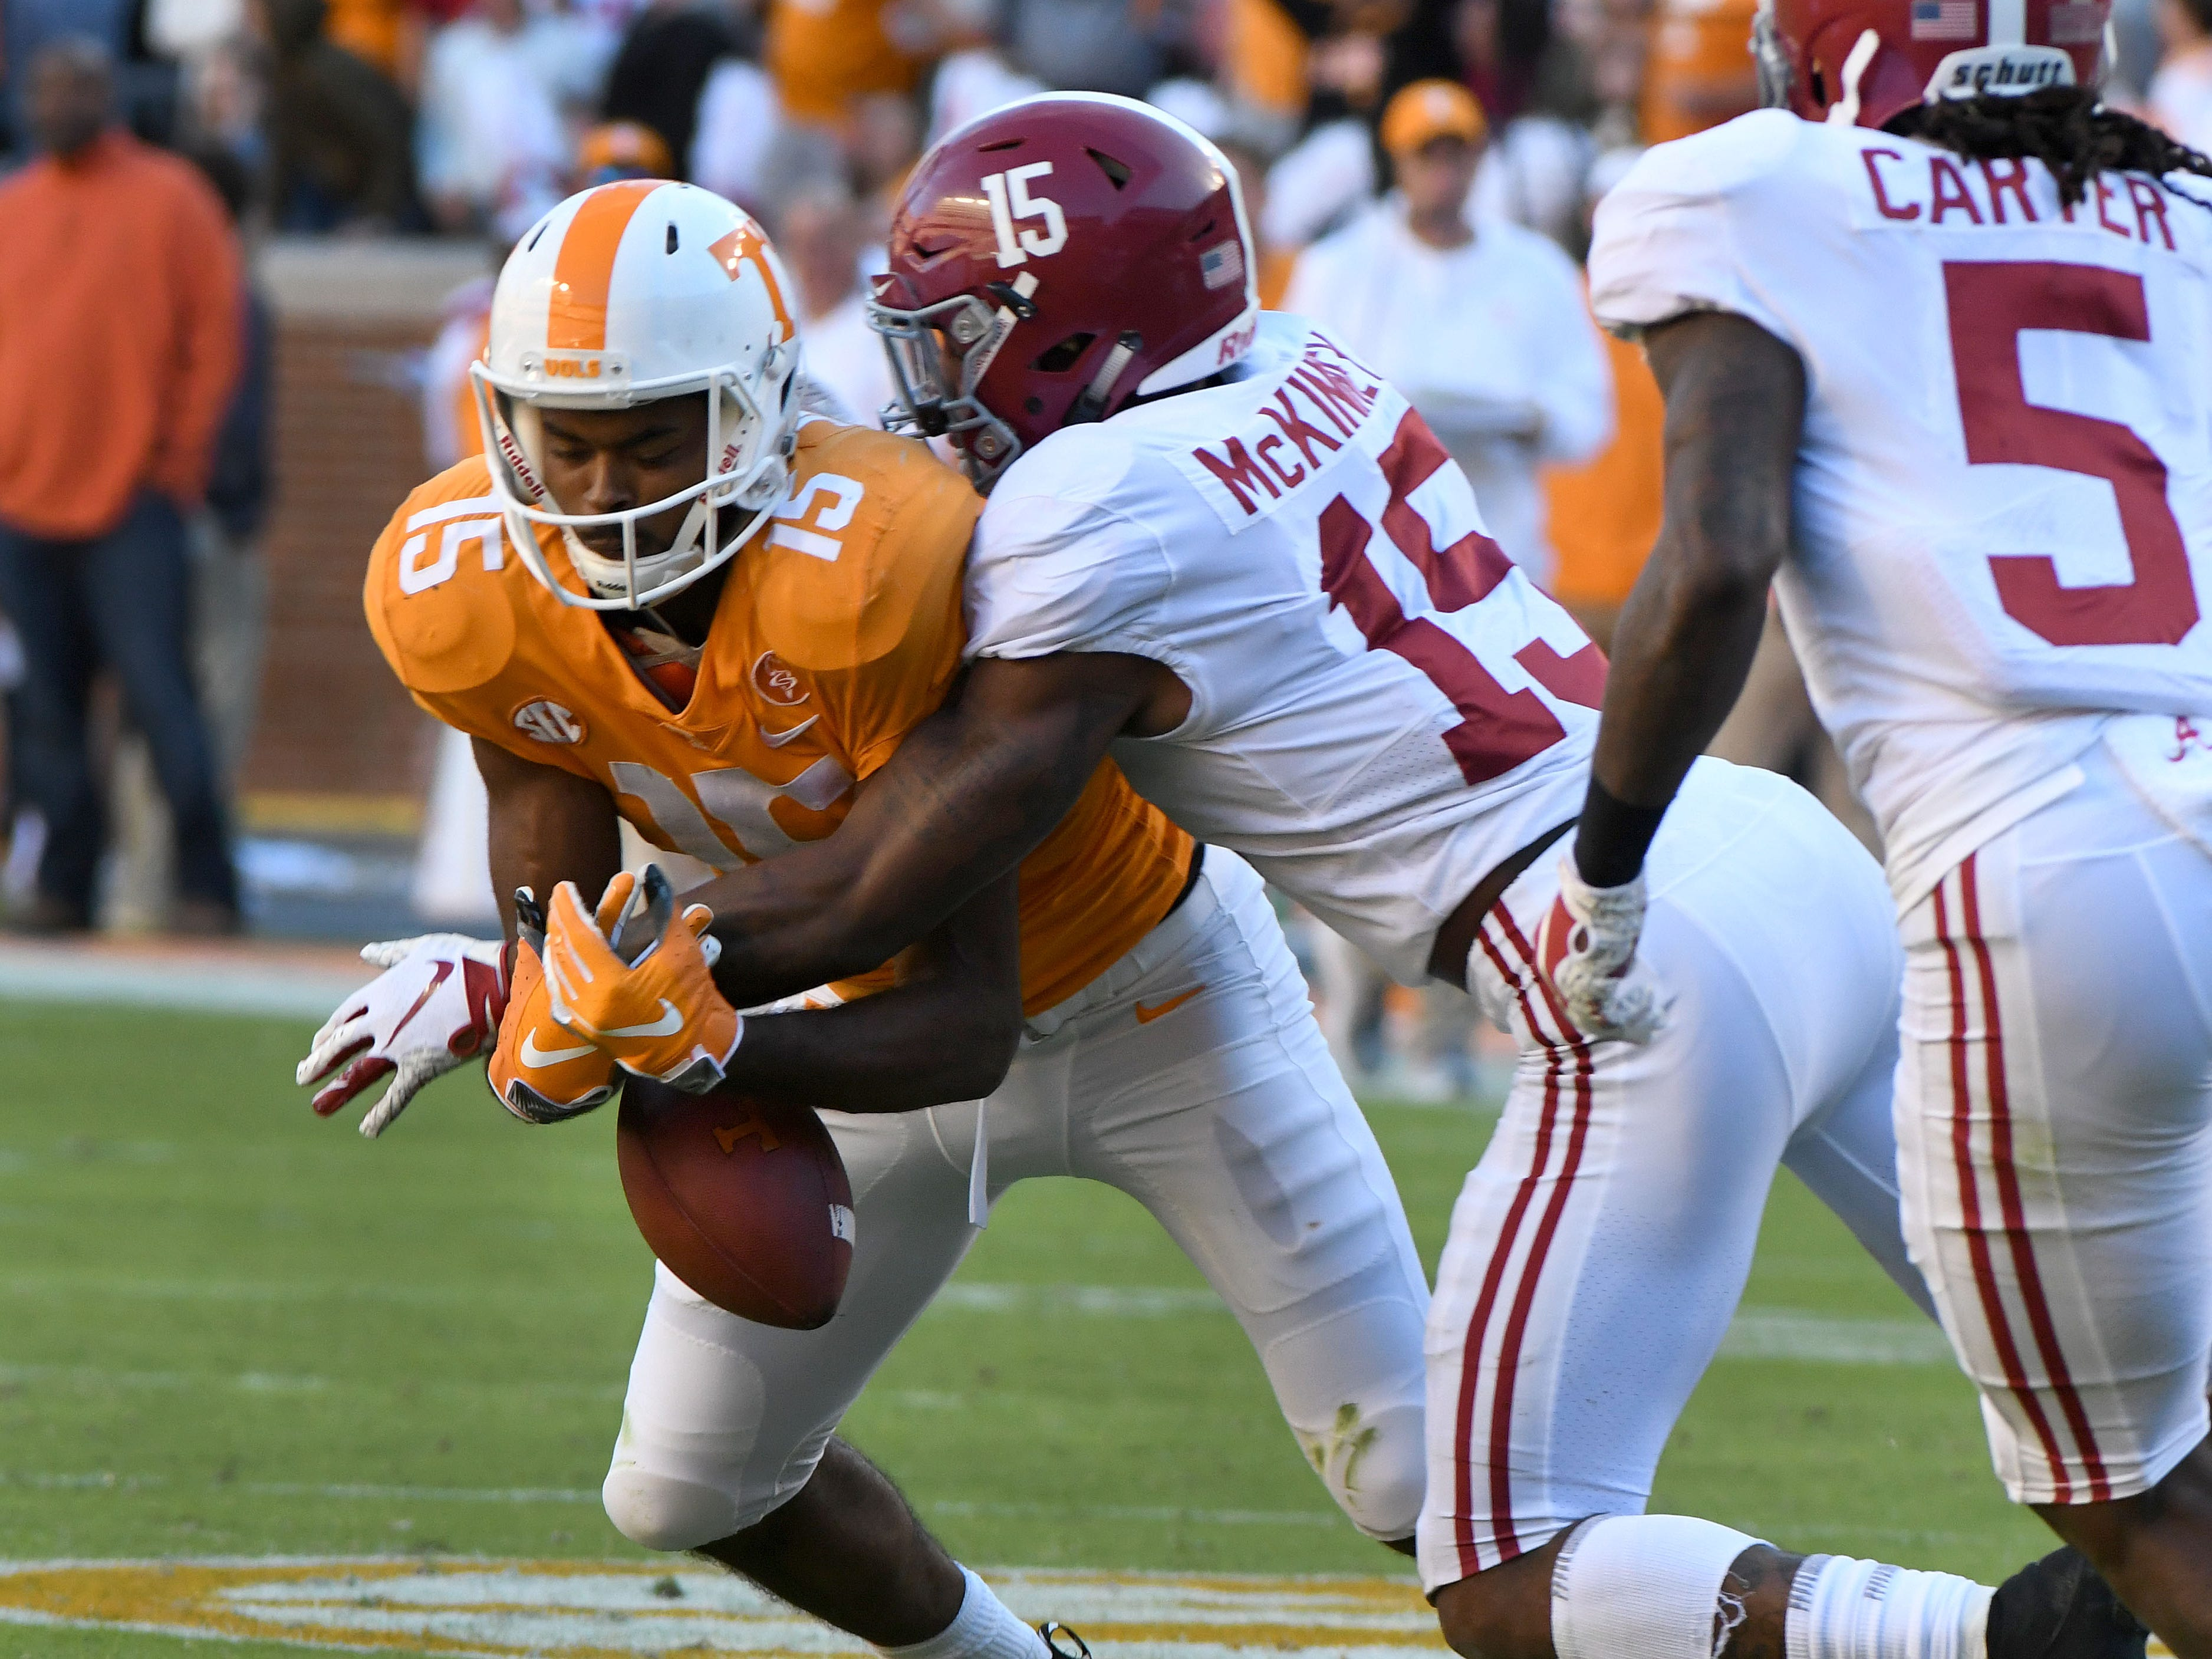 Tennessee wide receiver Jauan Jennings (15) has a pass stripped away by Alabama defensive back Xavier McKinney (15) during first half action Saturday, October 20, 2018 at Neyland Stadium in Knoxville, Tenn.